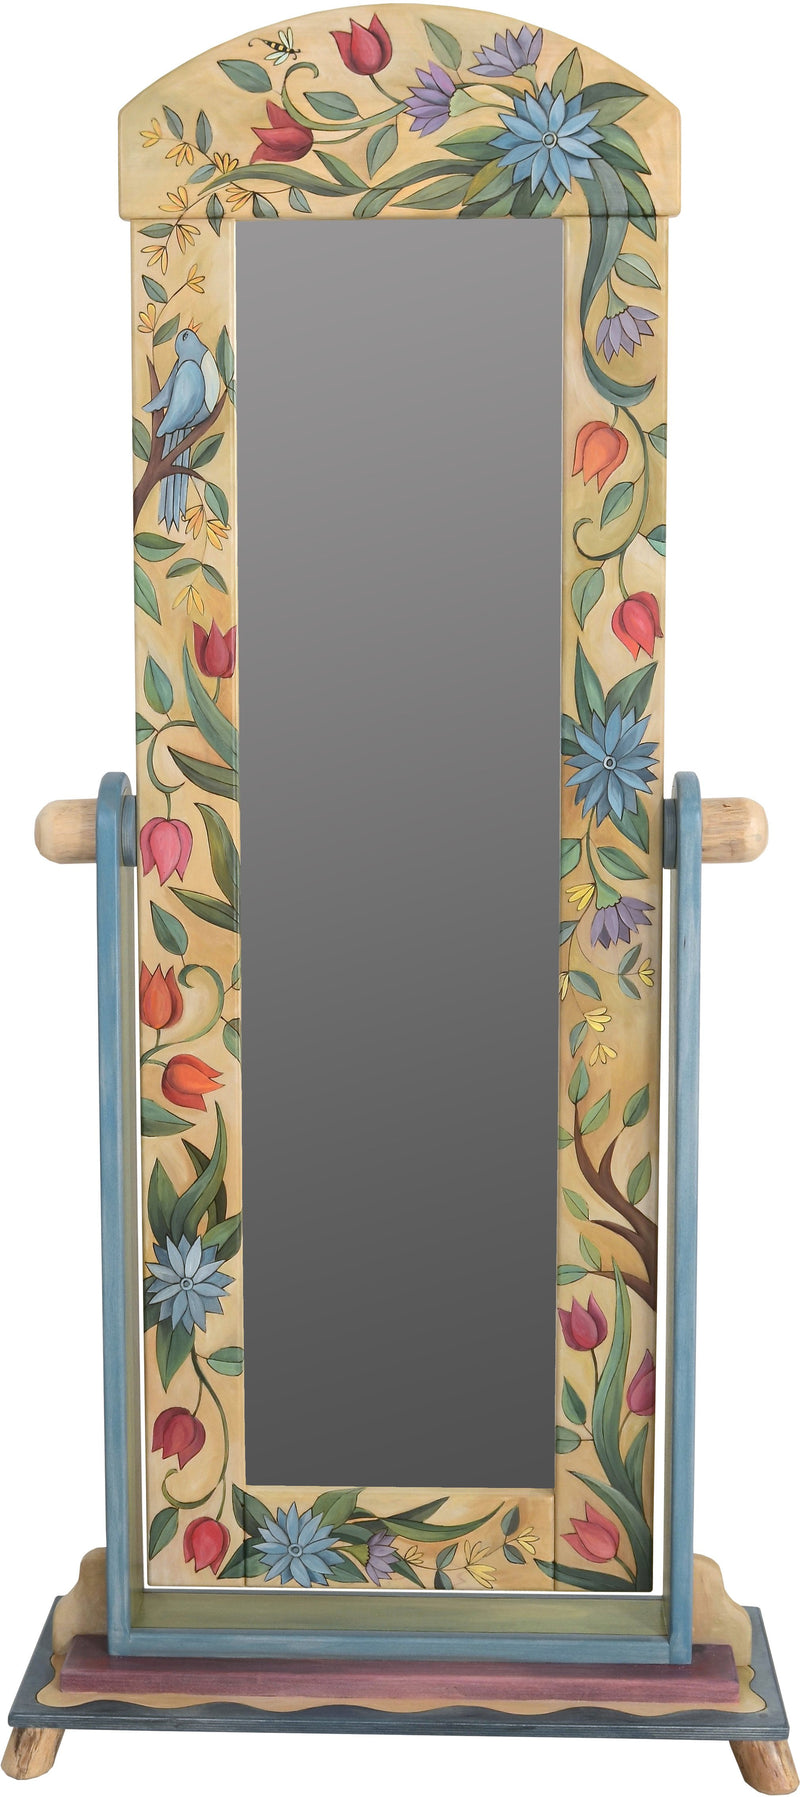 Wardrobe Mirror on Stand –  Elegant wardrobe mirror on stand with bright floral motif